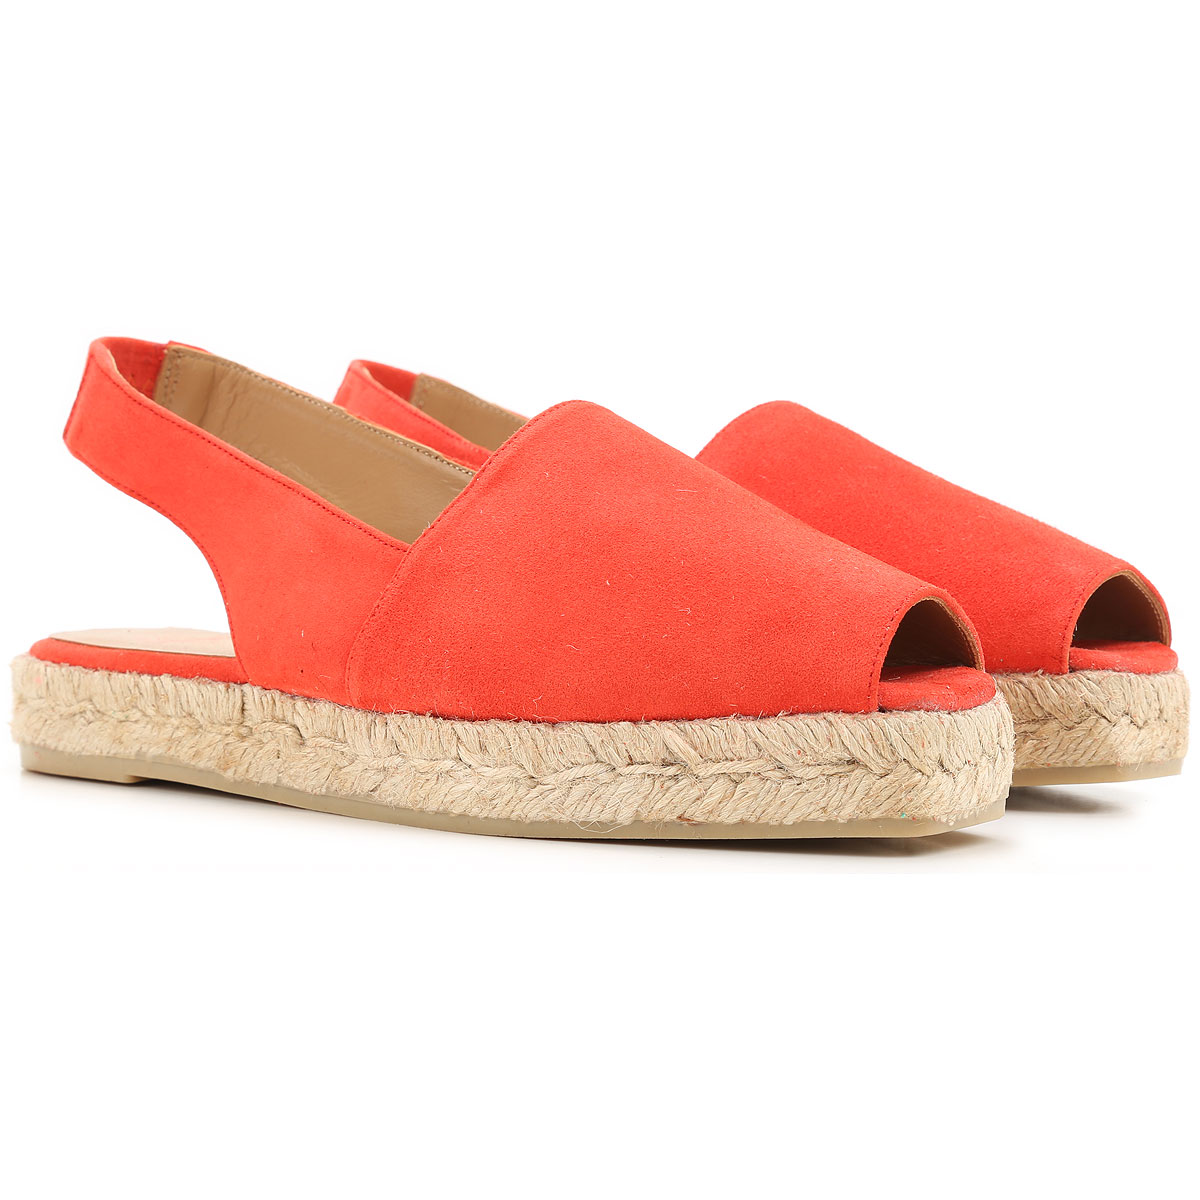 Castaner Wedges for Women On Sale in Outlet, Red, Fabric, 2019, 6